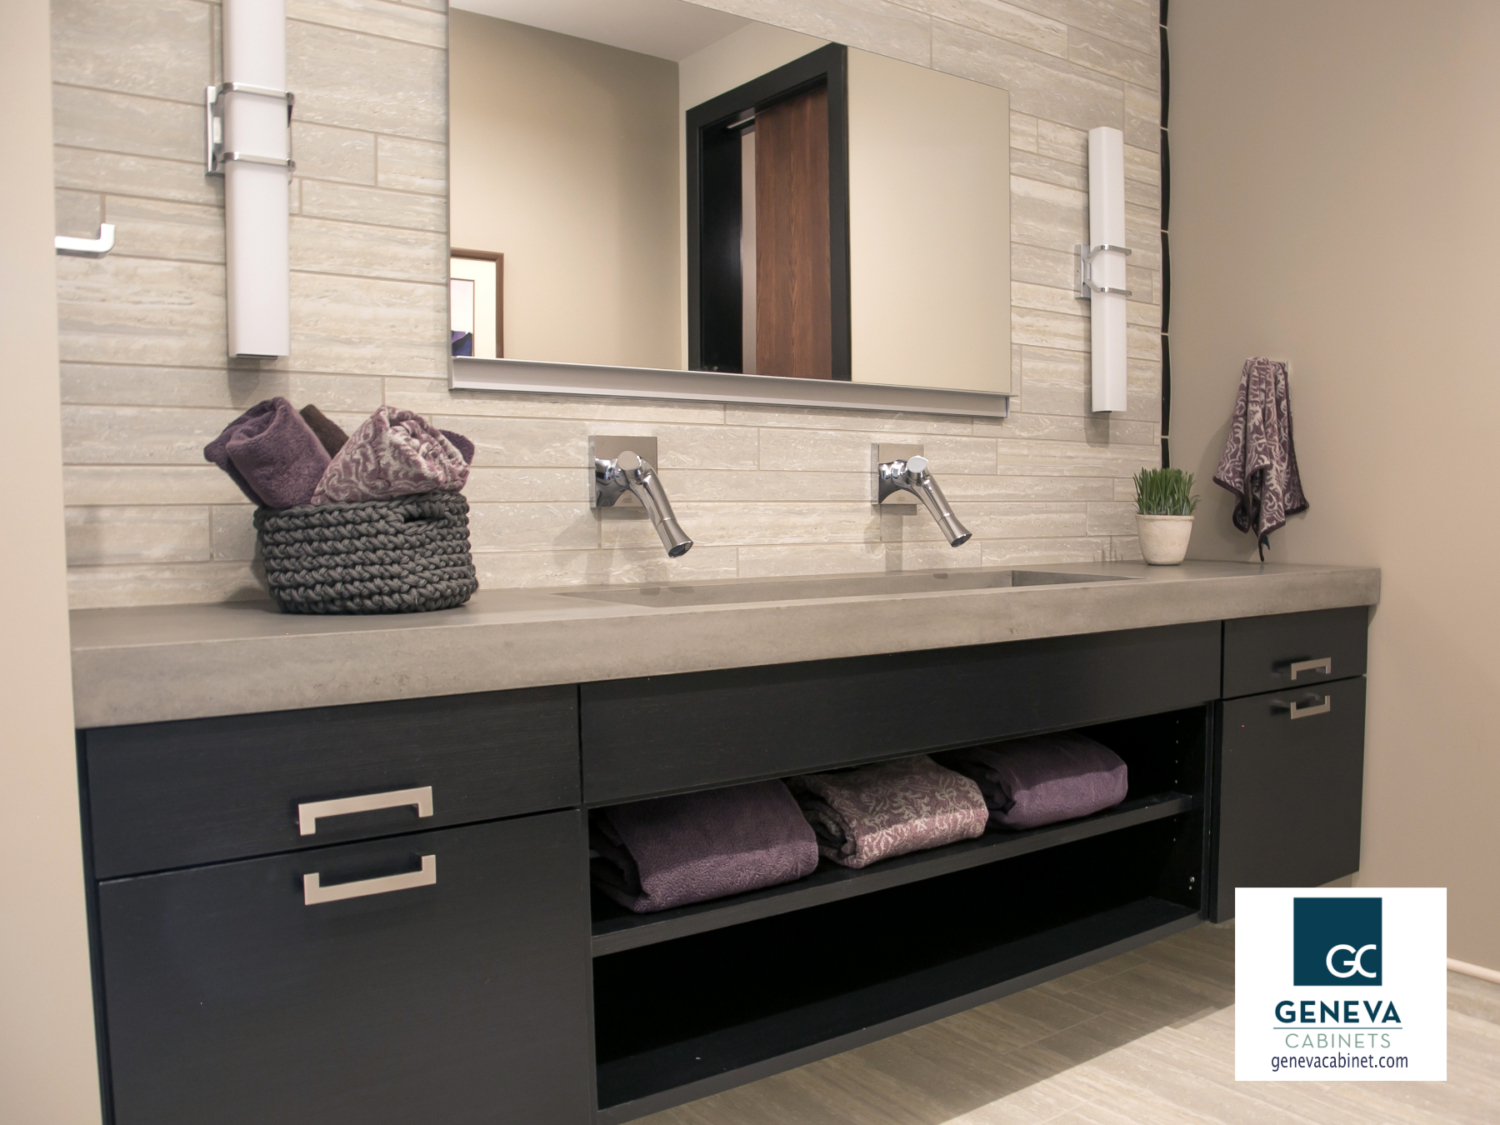 Bathroom cabinetry sleek modern dark stained finish